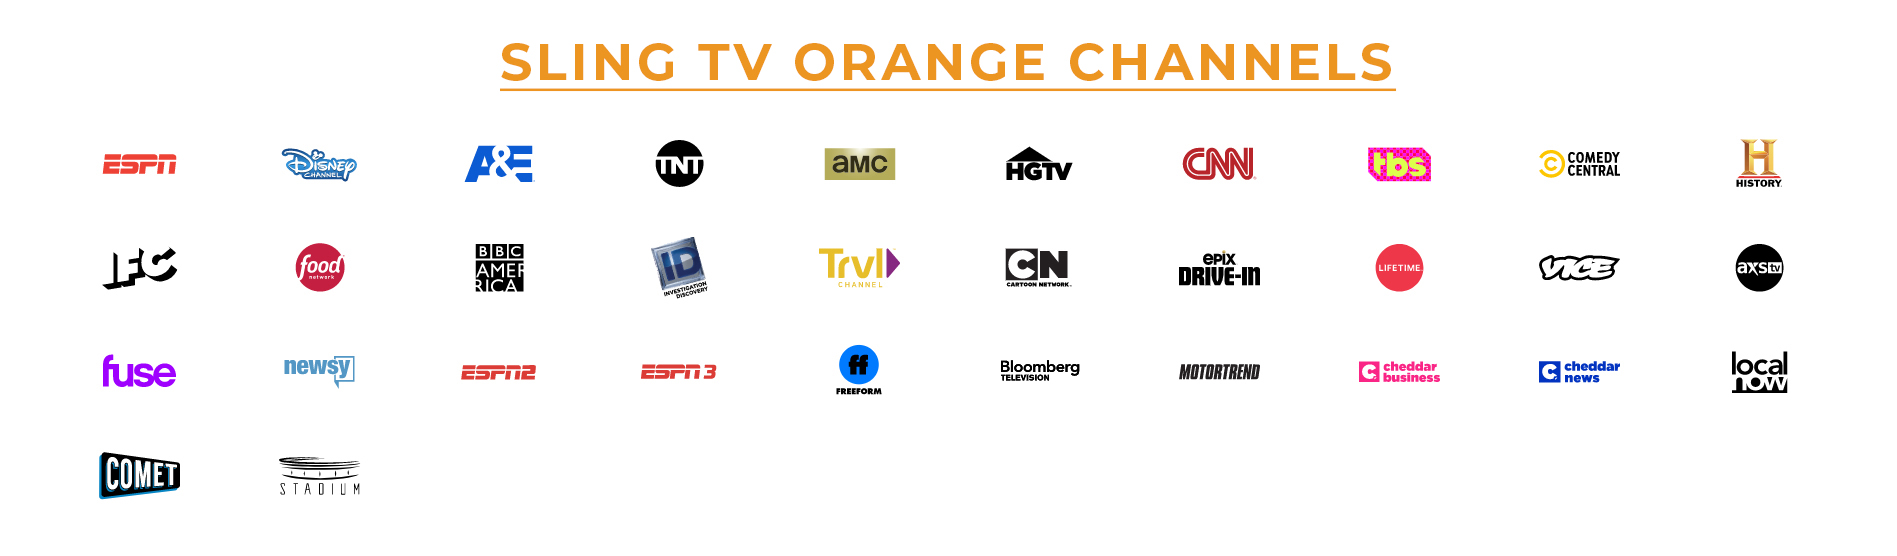 Sling TV Orange Package